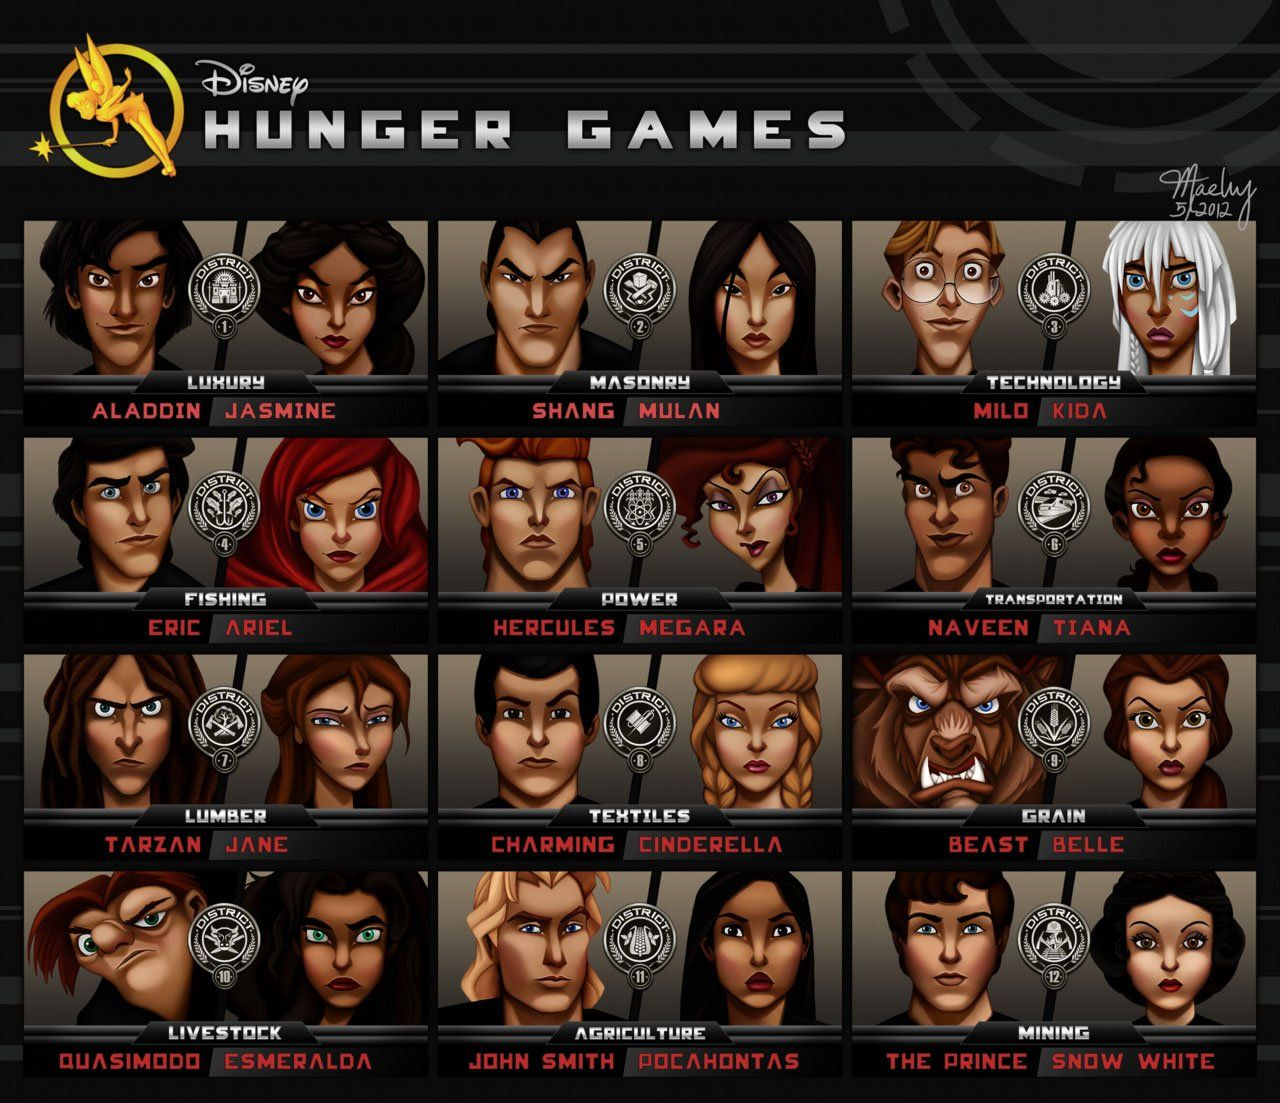 Disney Hunger Games.  I know it made sense to put Snow white in District 12 because of mining, but John Smith and Pocahantos are deadringers for Peeta and Katniss.